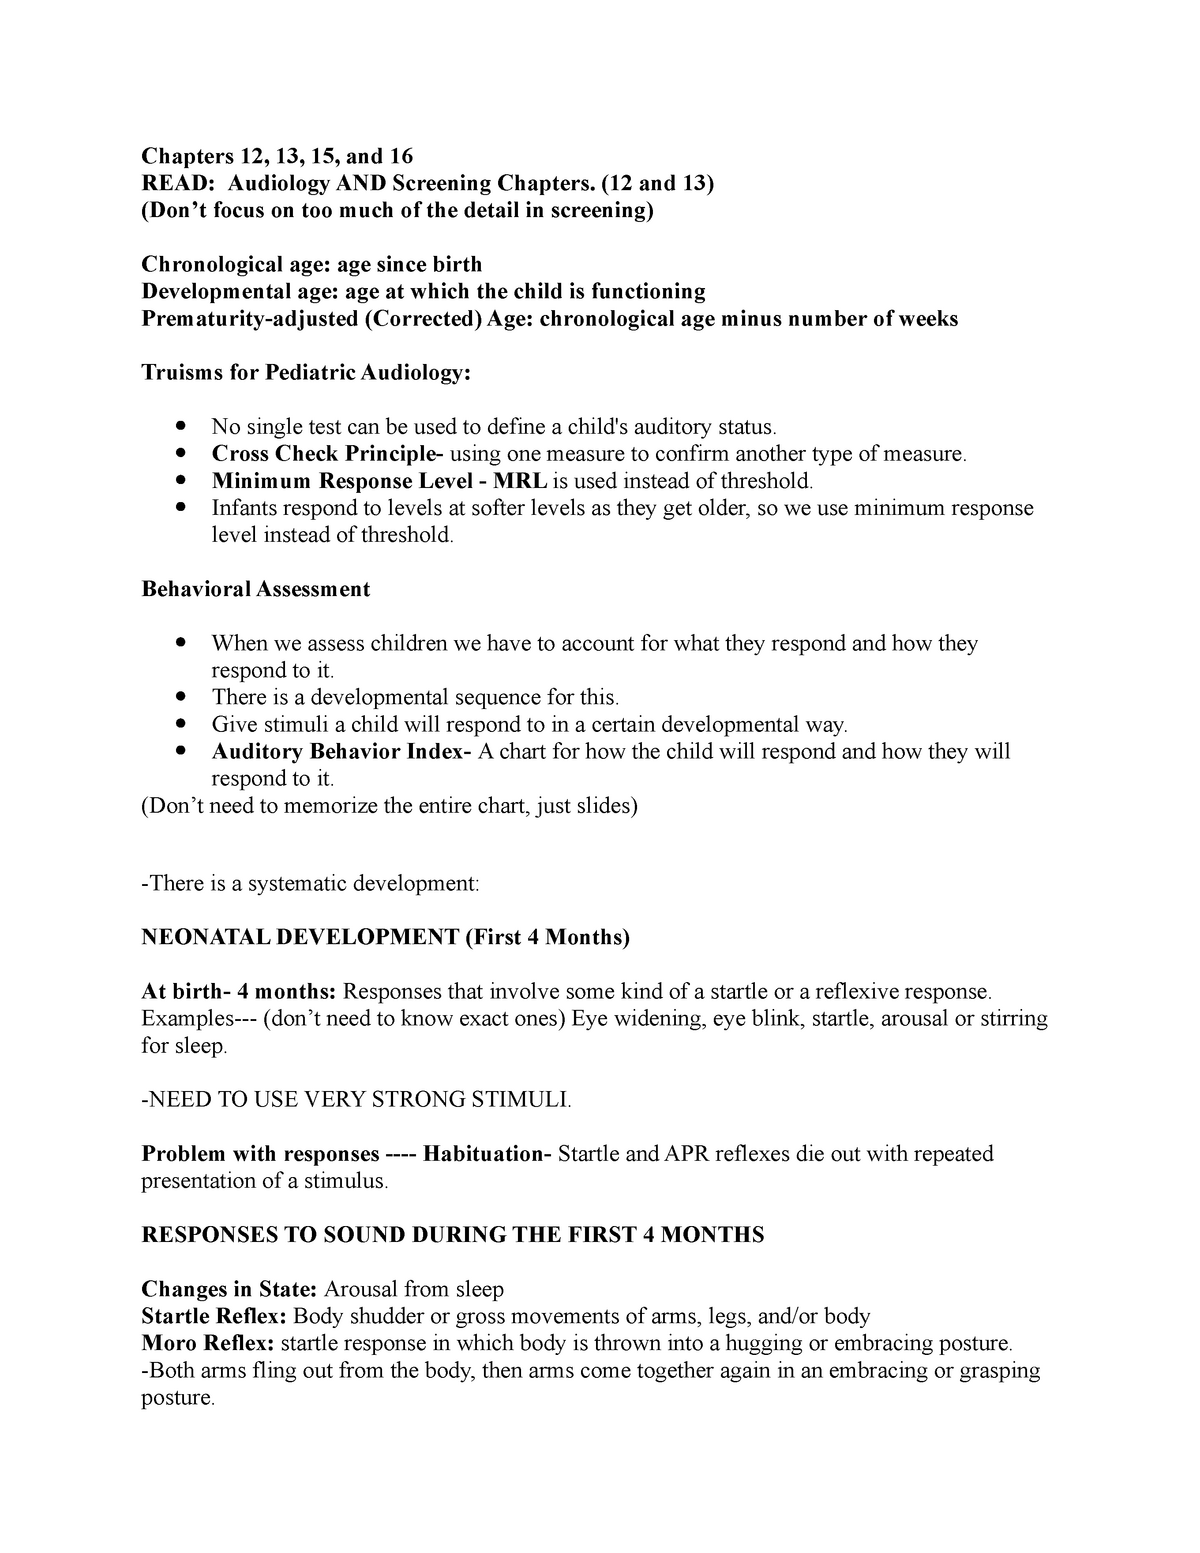 AUdiology Exam #3 - Lecture notes 12-13, 15-16 - LCD 330